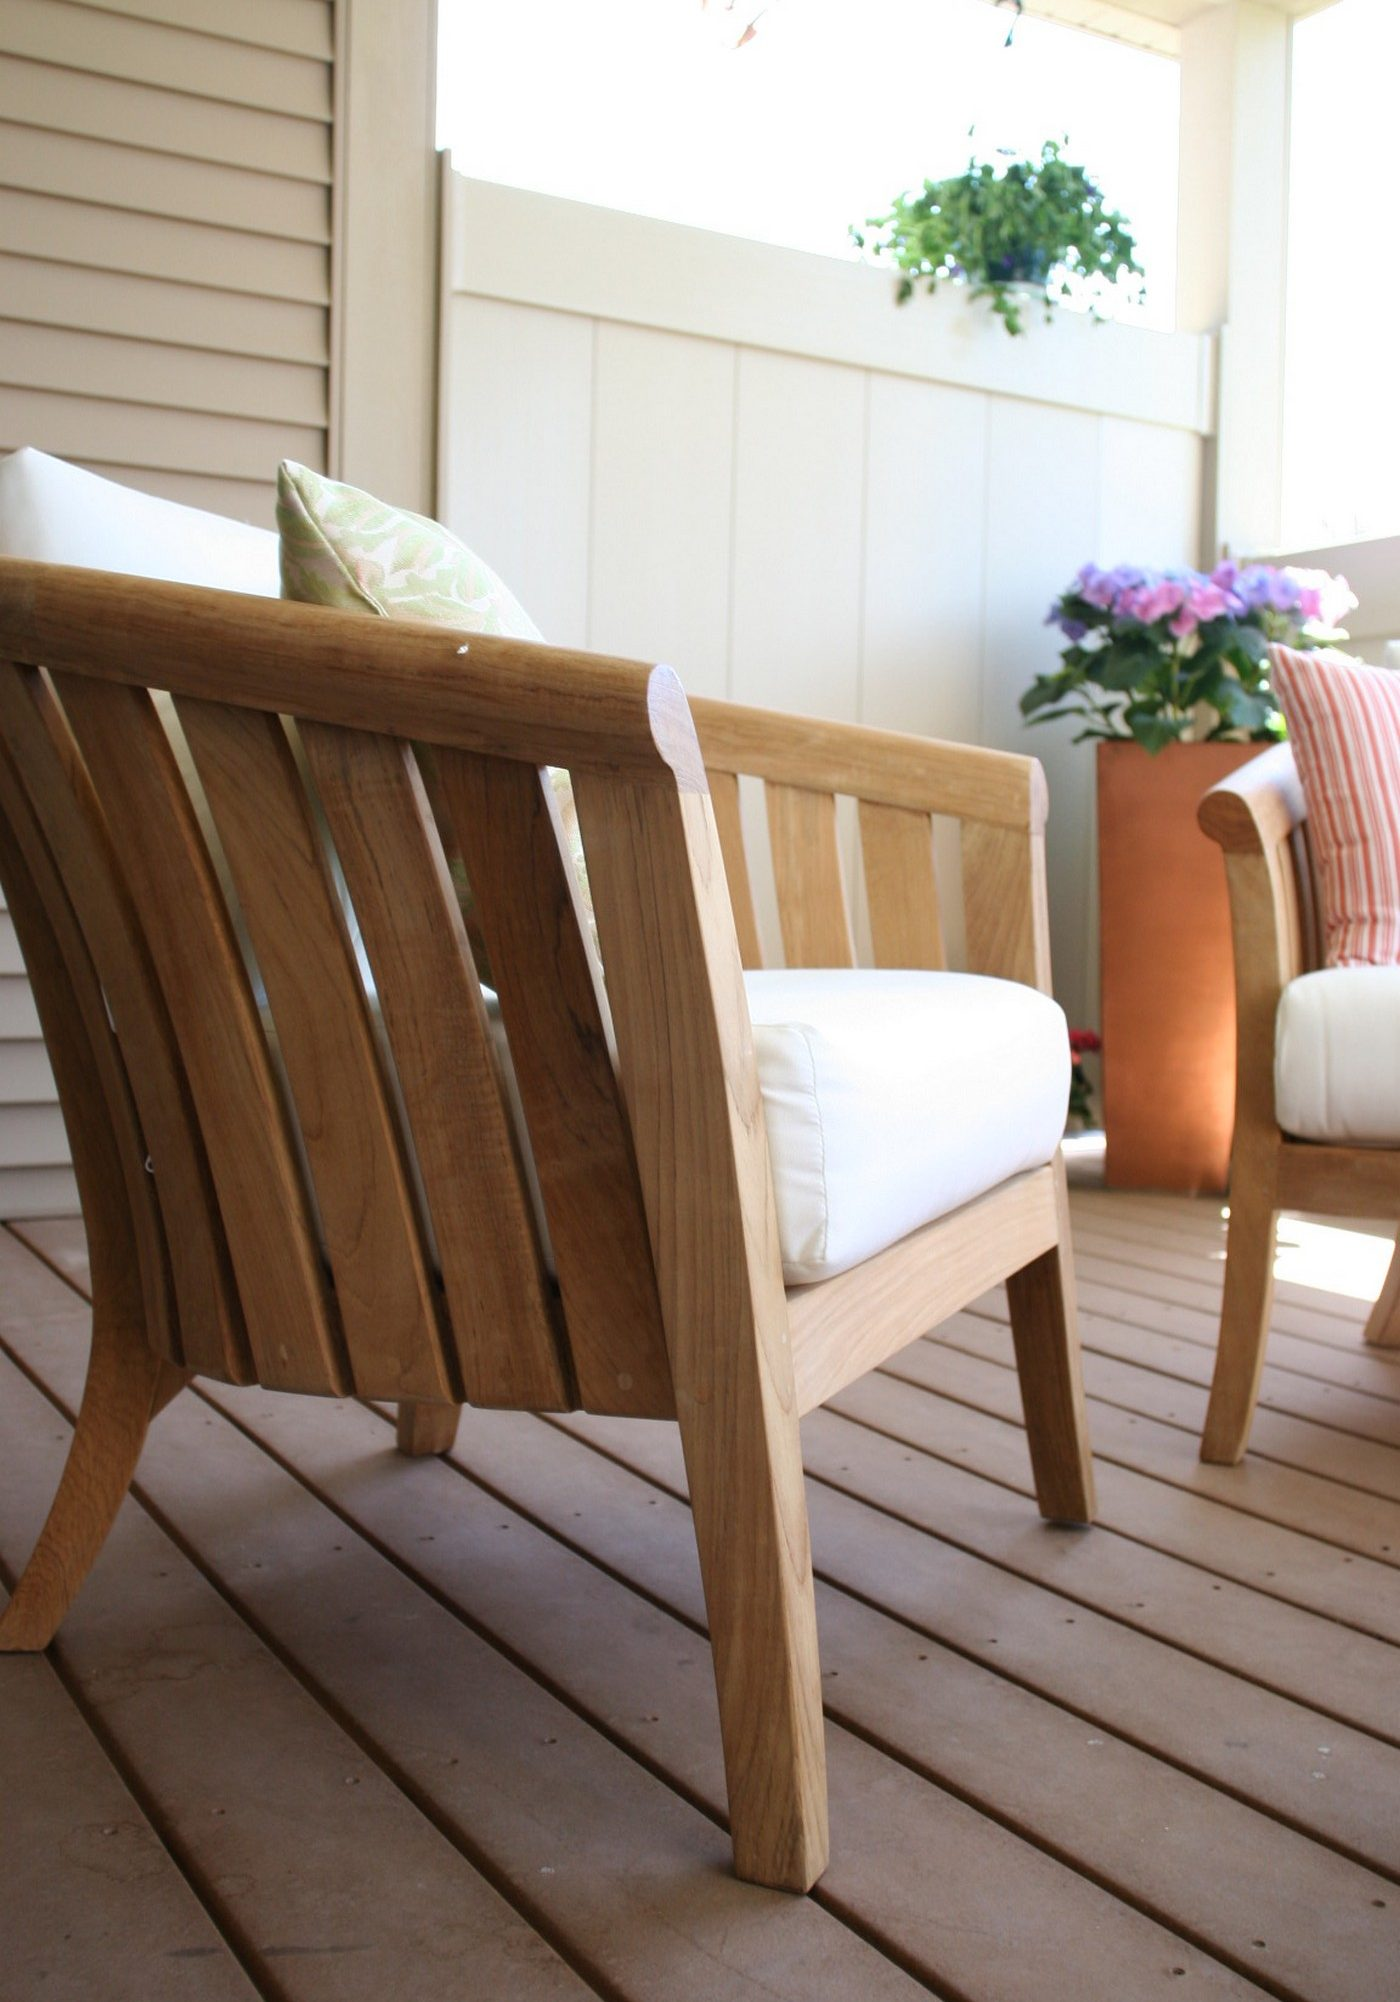 Porch_Deck-03